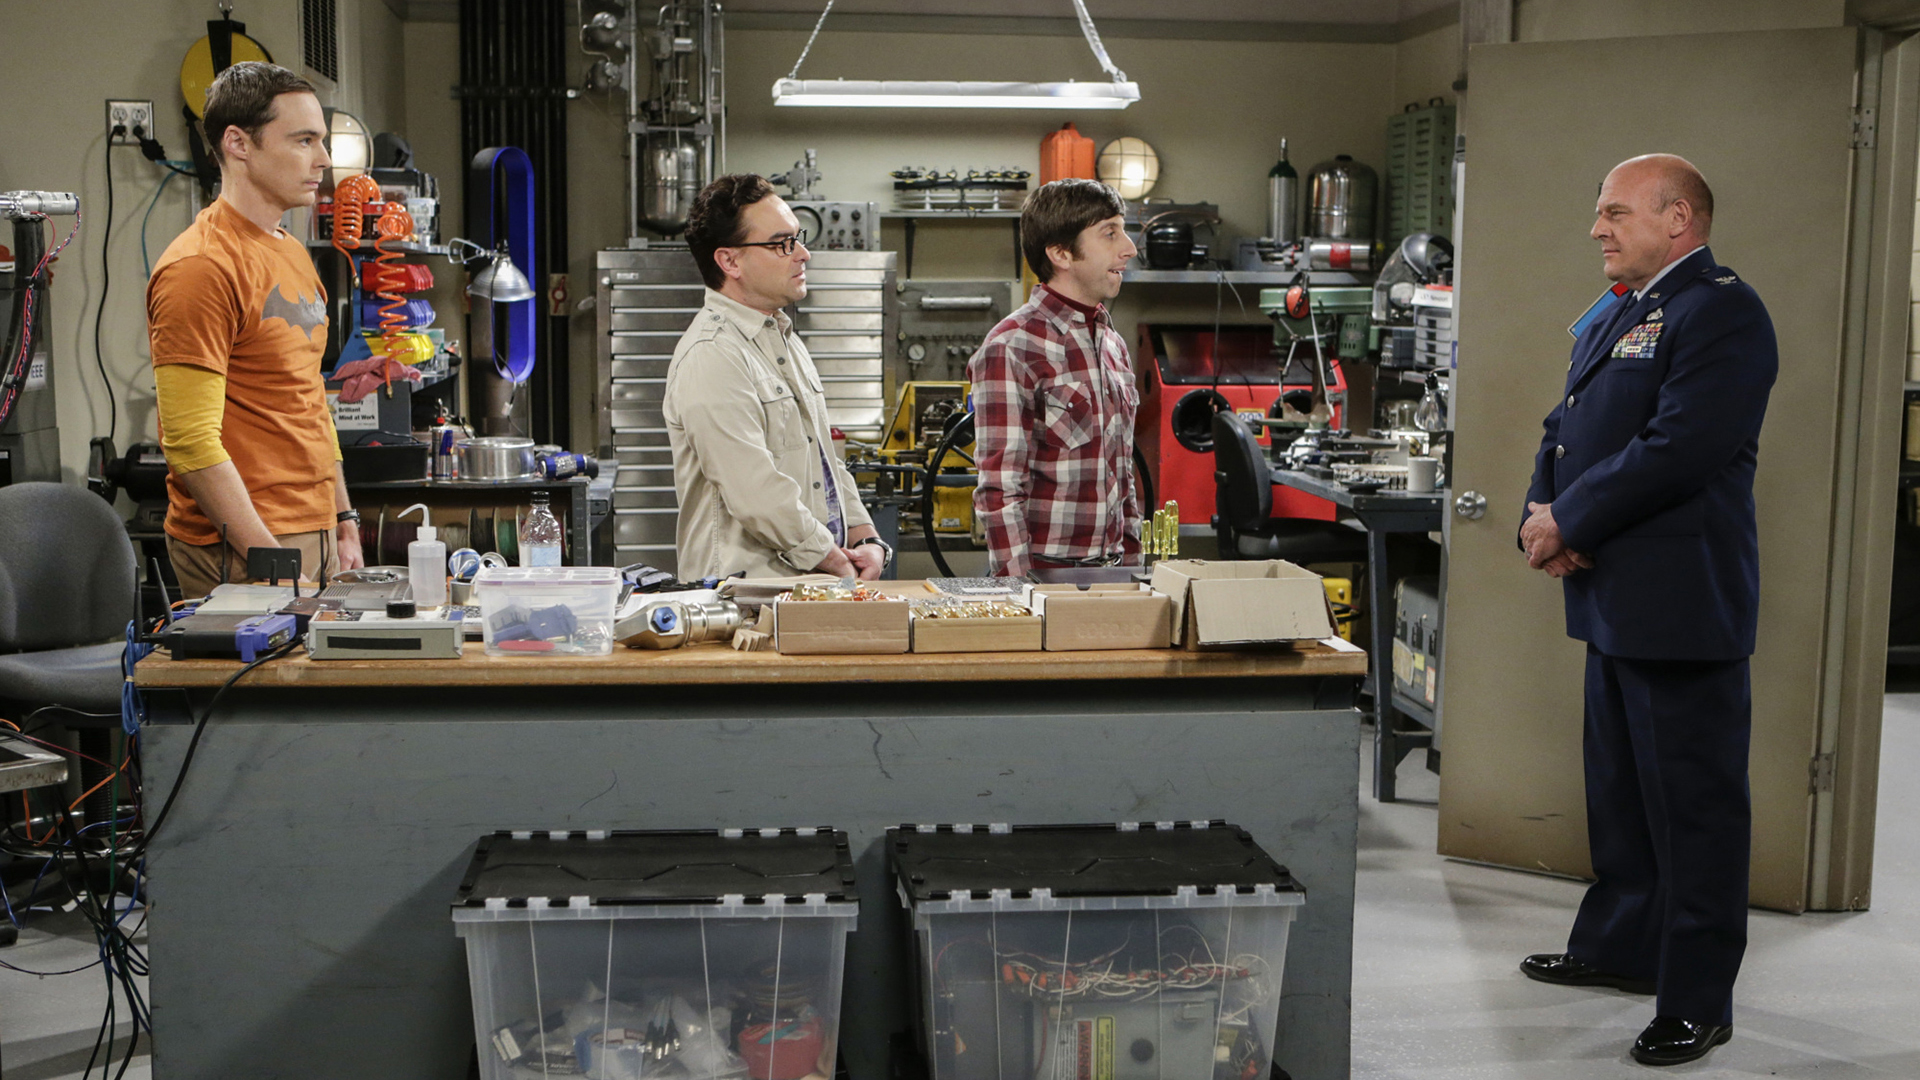 Sheldon, Leonard, and Howard try to keep their cool in front of the colonel.